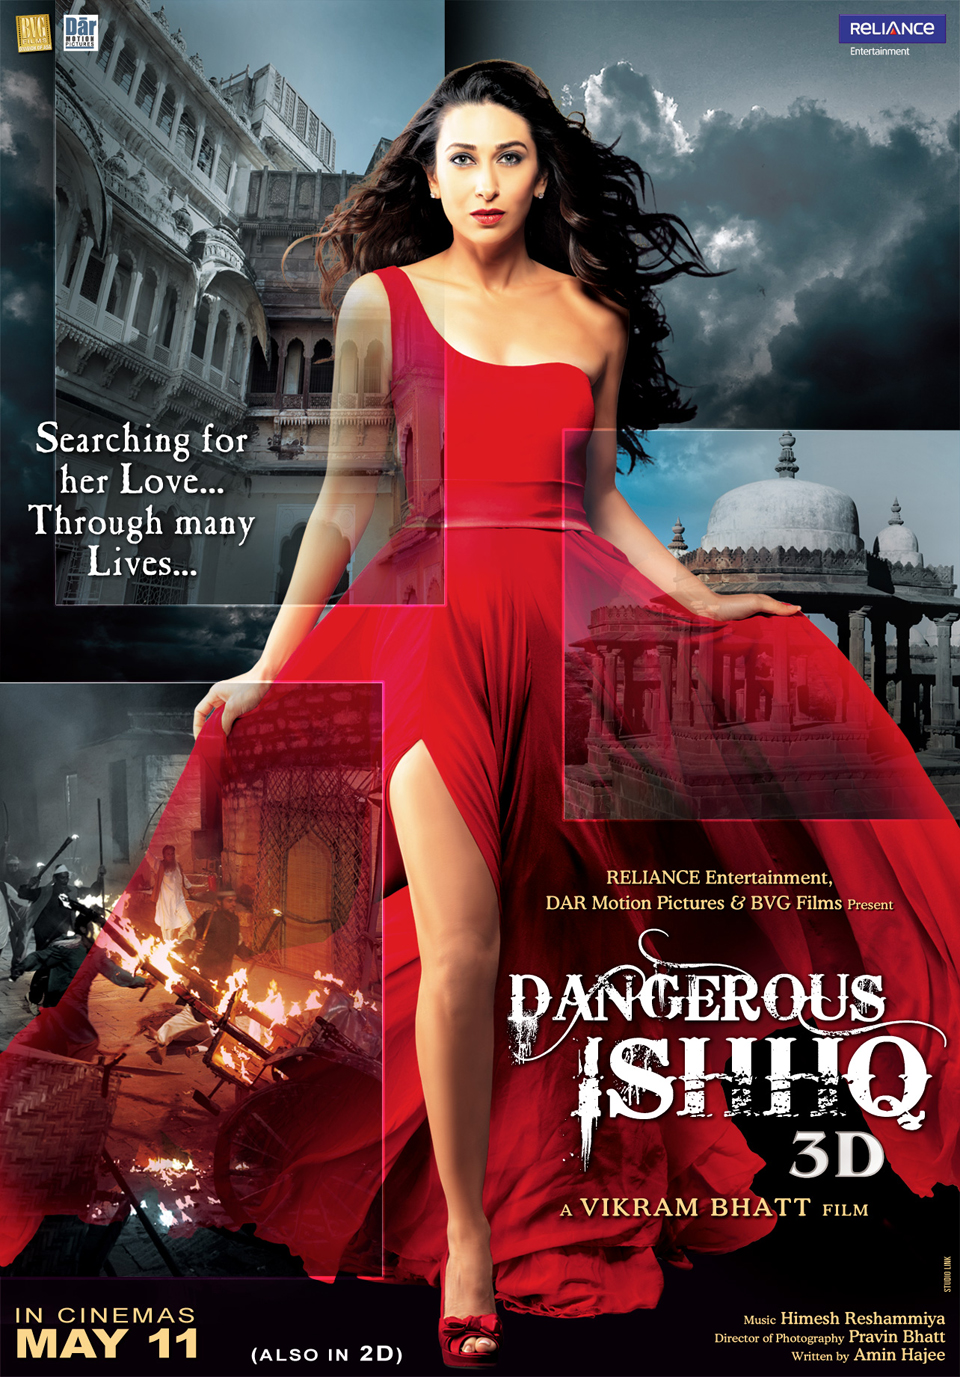 First Look Poster Dangerous Ishhq Karishma Kapoor MOVIE: Dangerous Ishhq (2012)